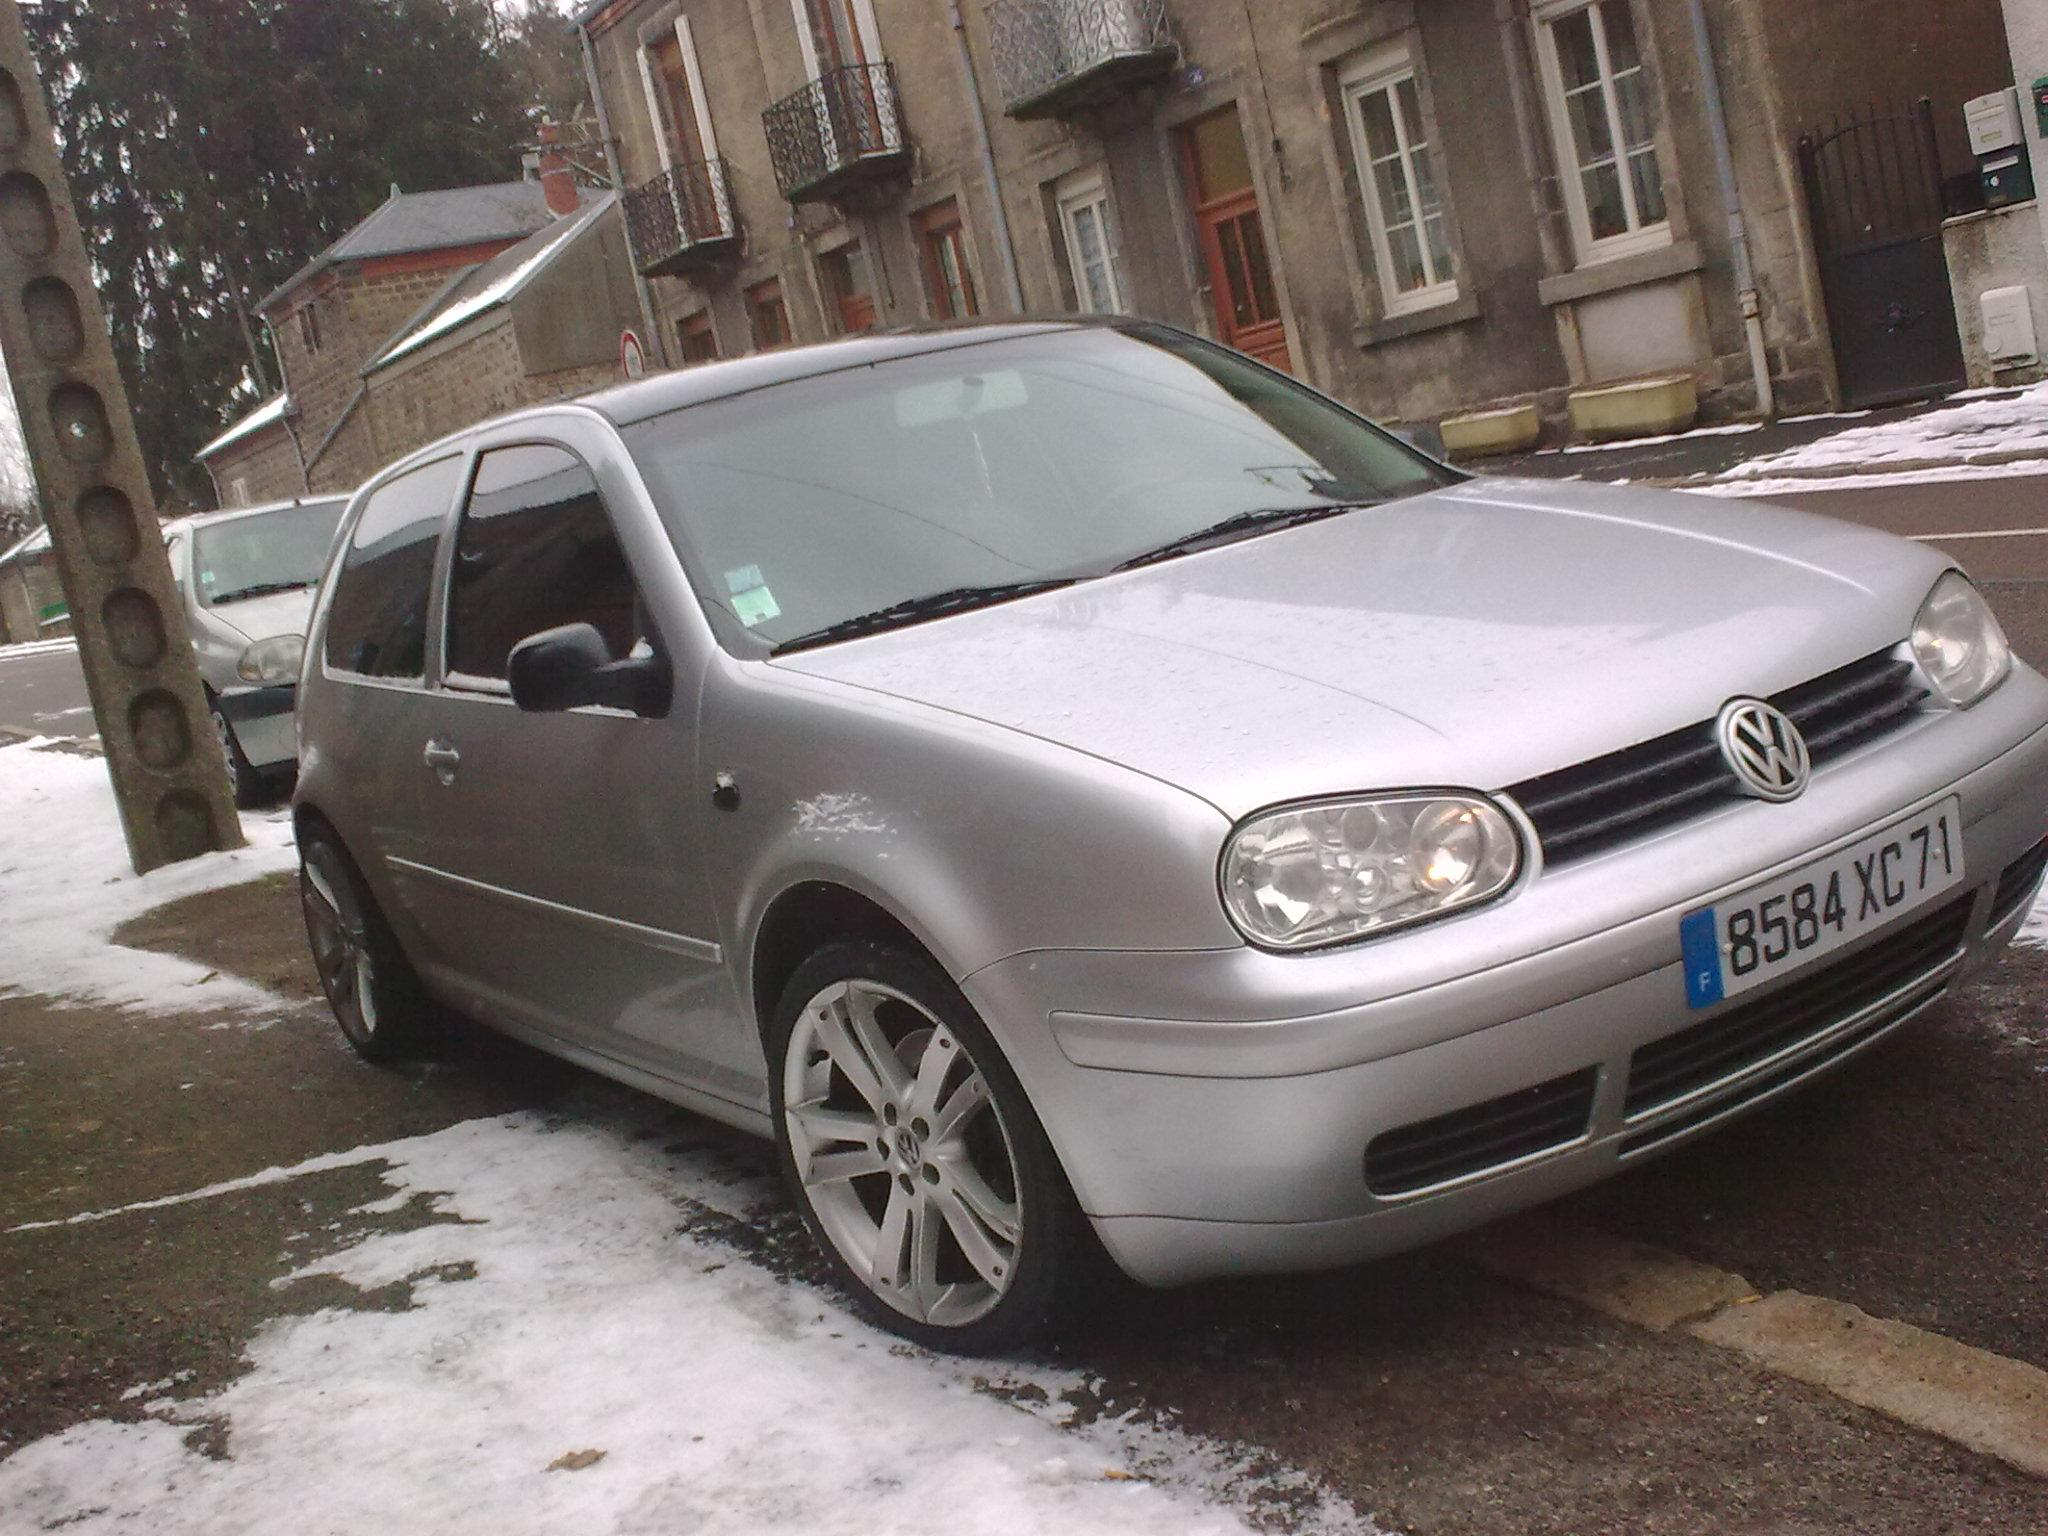 golf iv tdi 90 de foolek   garage des golf iv tdi 90